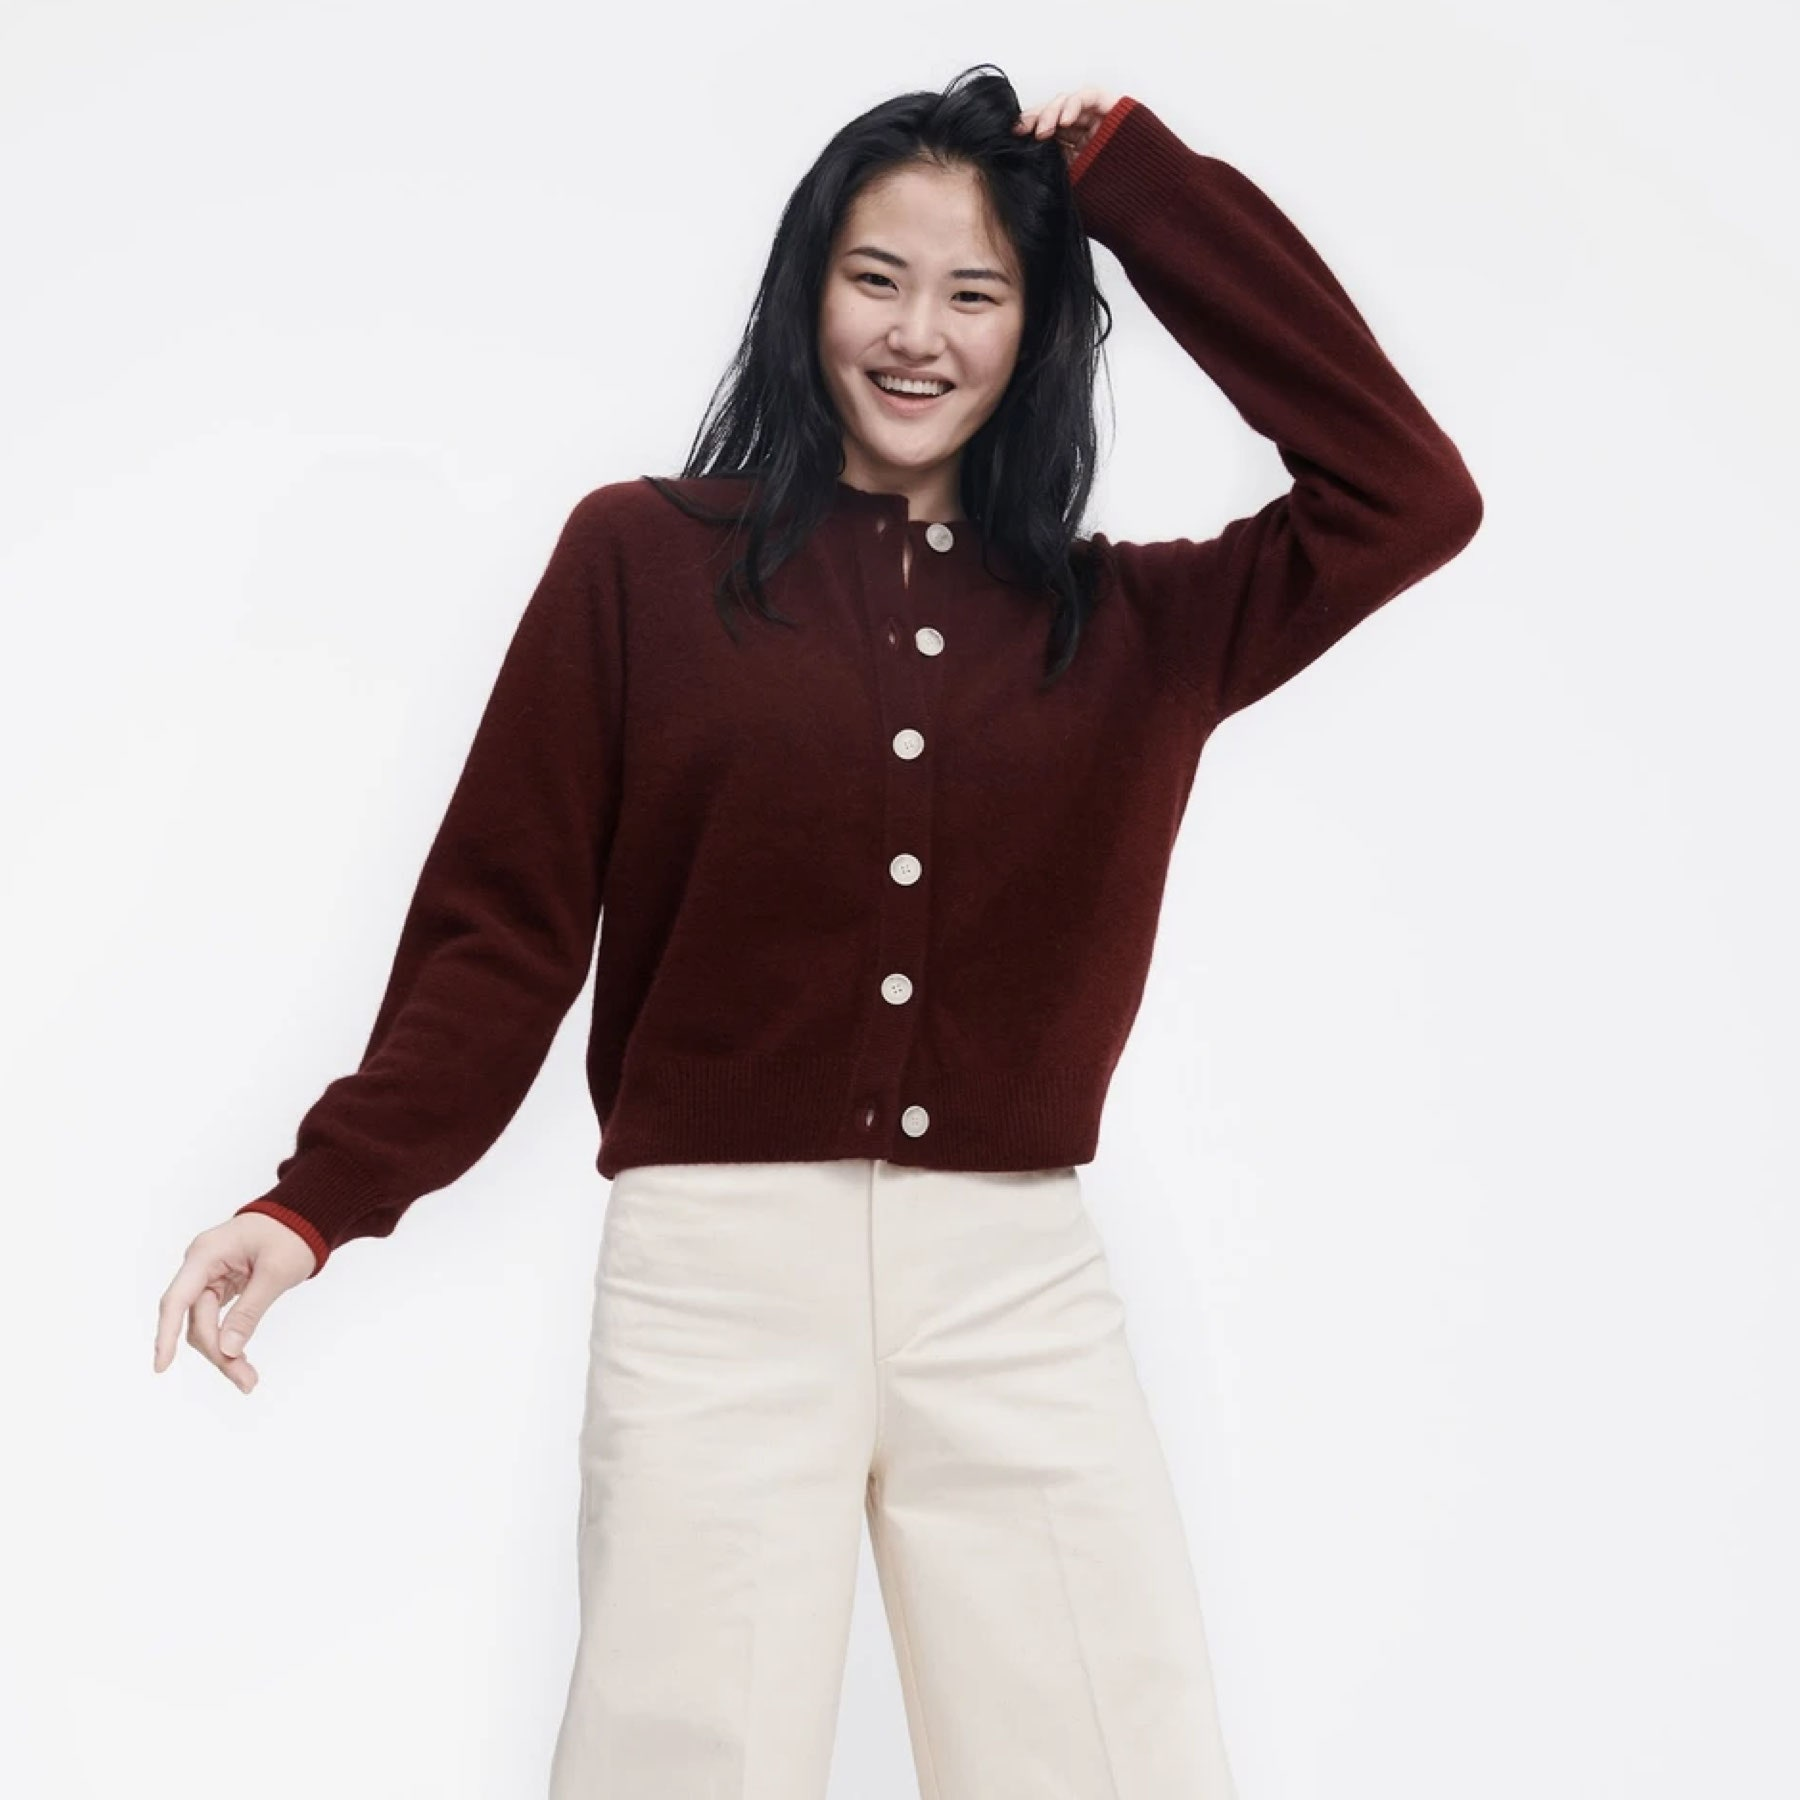 model wearing red sweater with white buttons and white pants